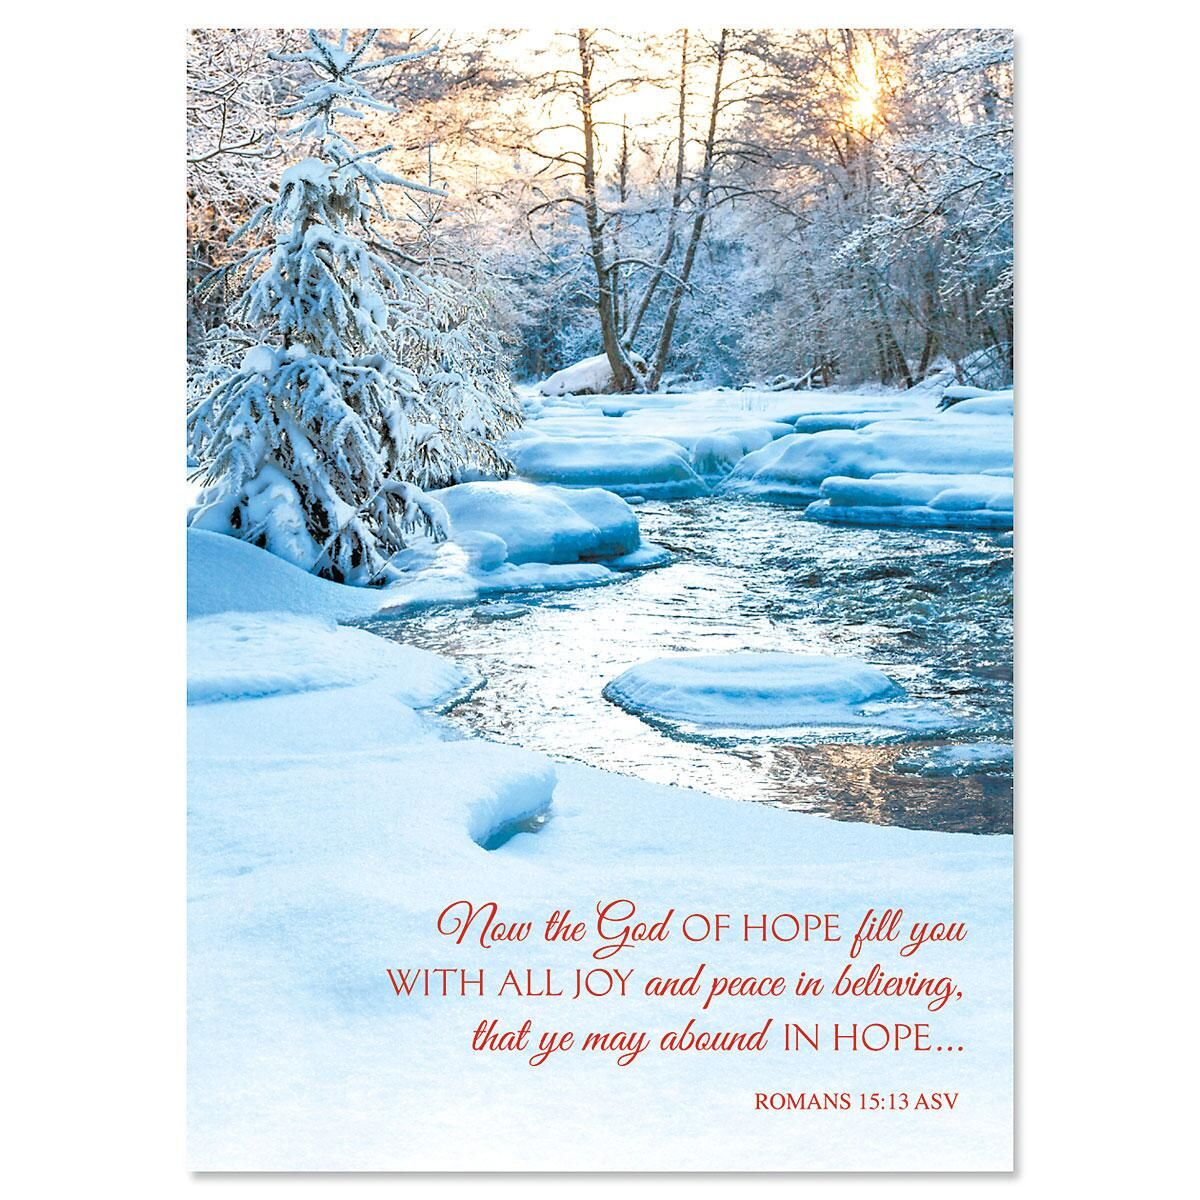 Snowy Stream Nonpersonalized Christmas Cards - Set of 18